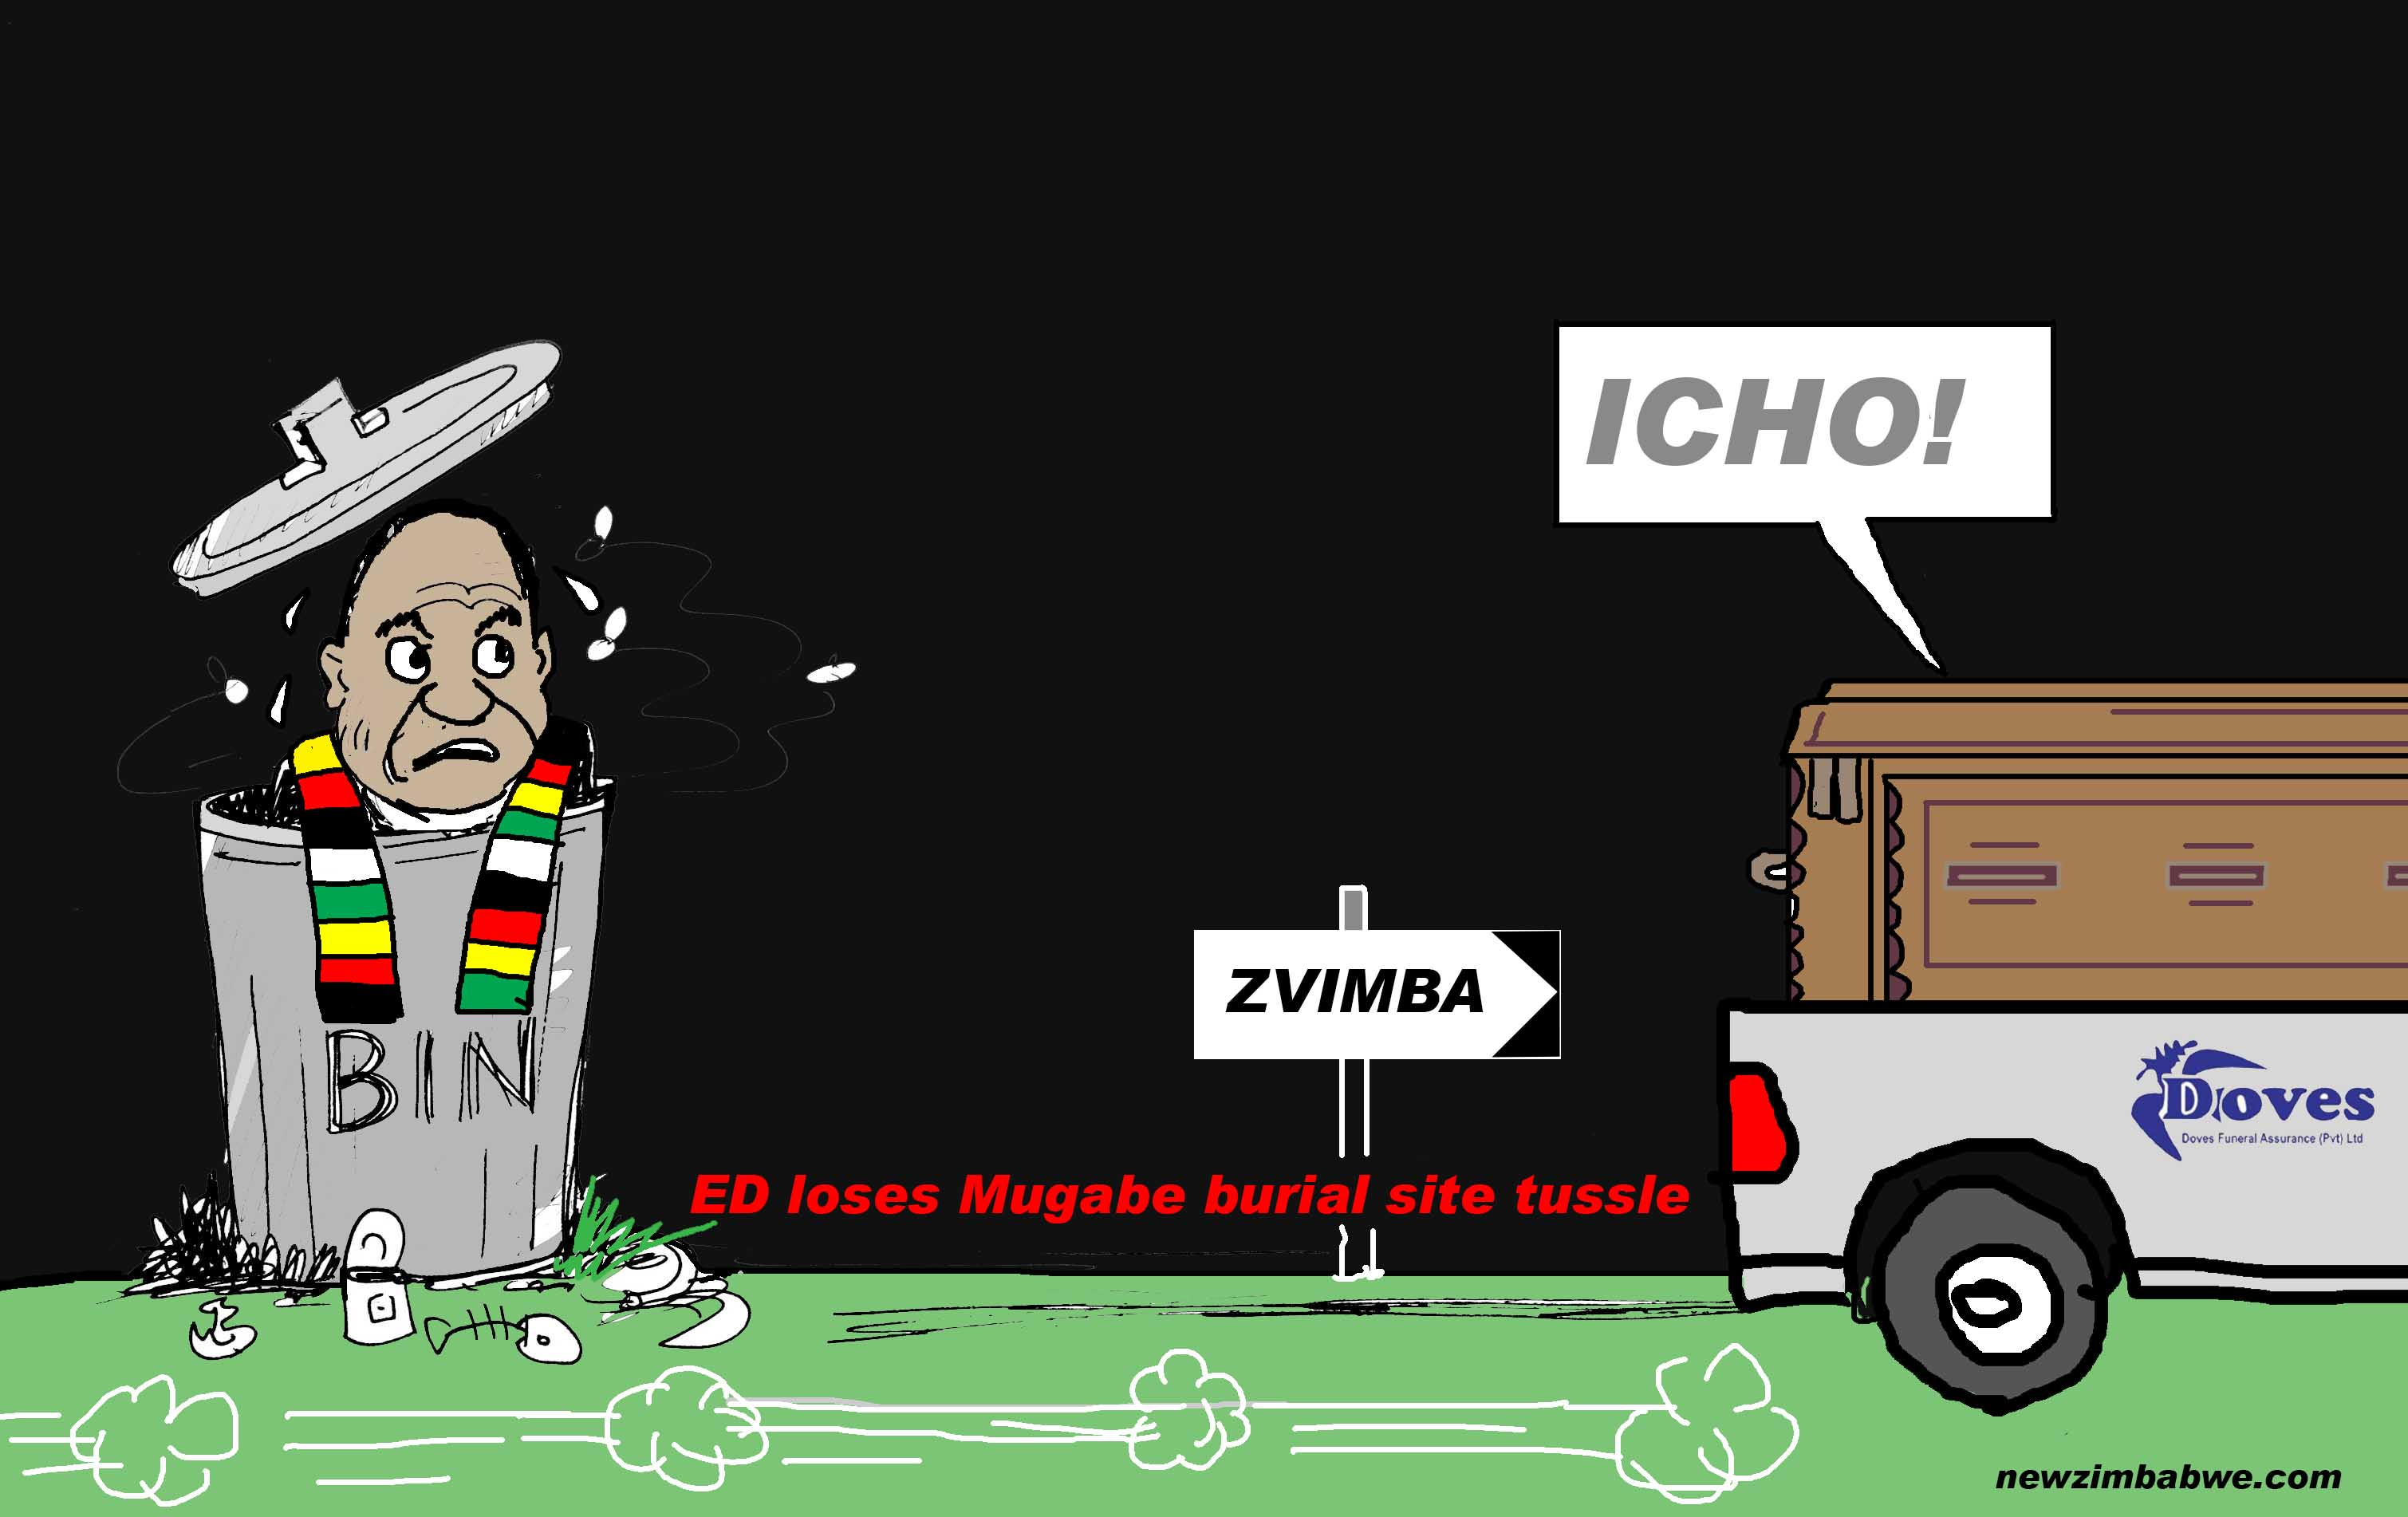 ED loses fight against Mugabe